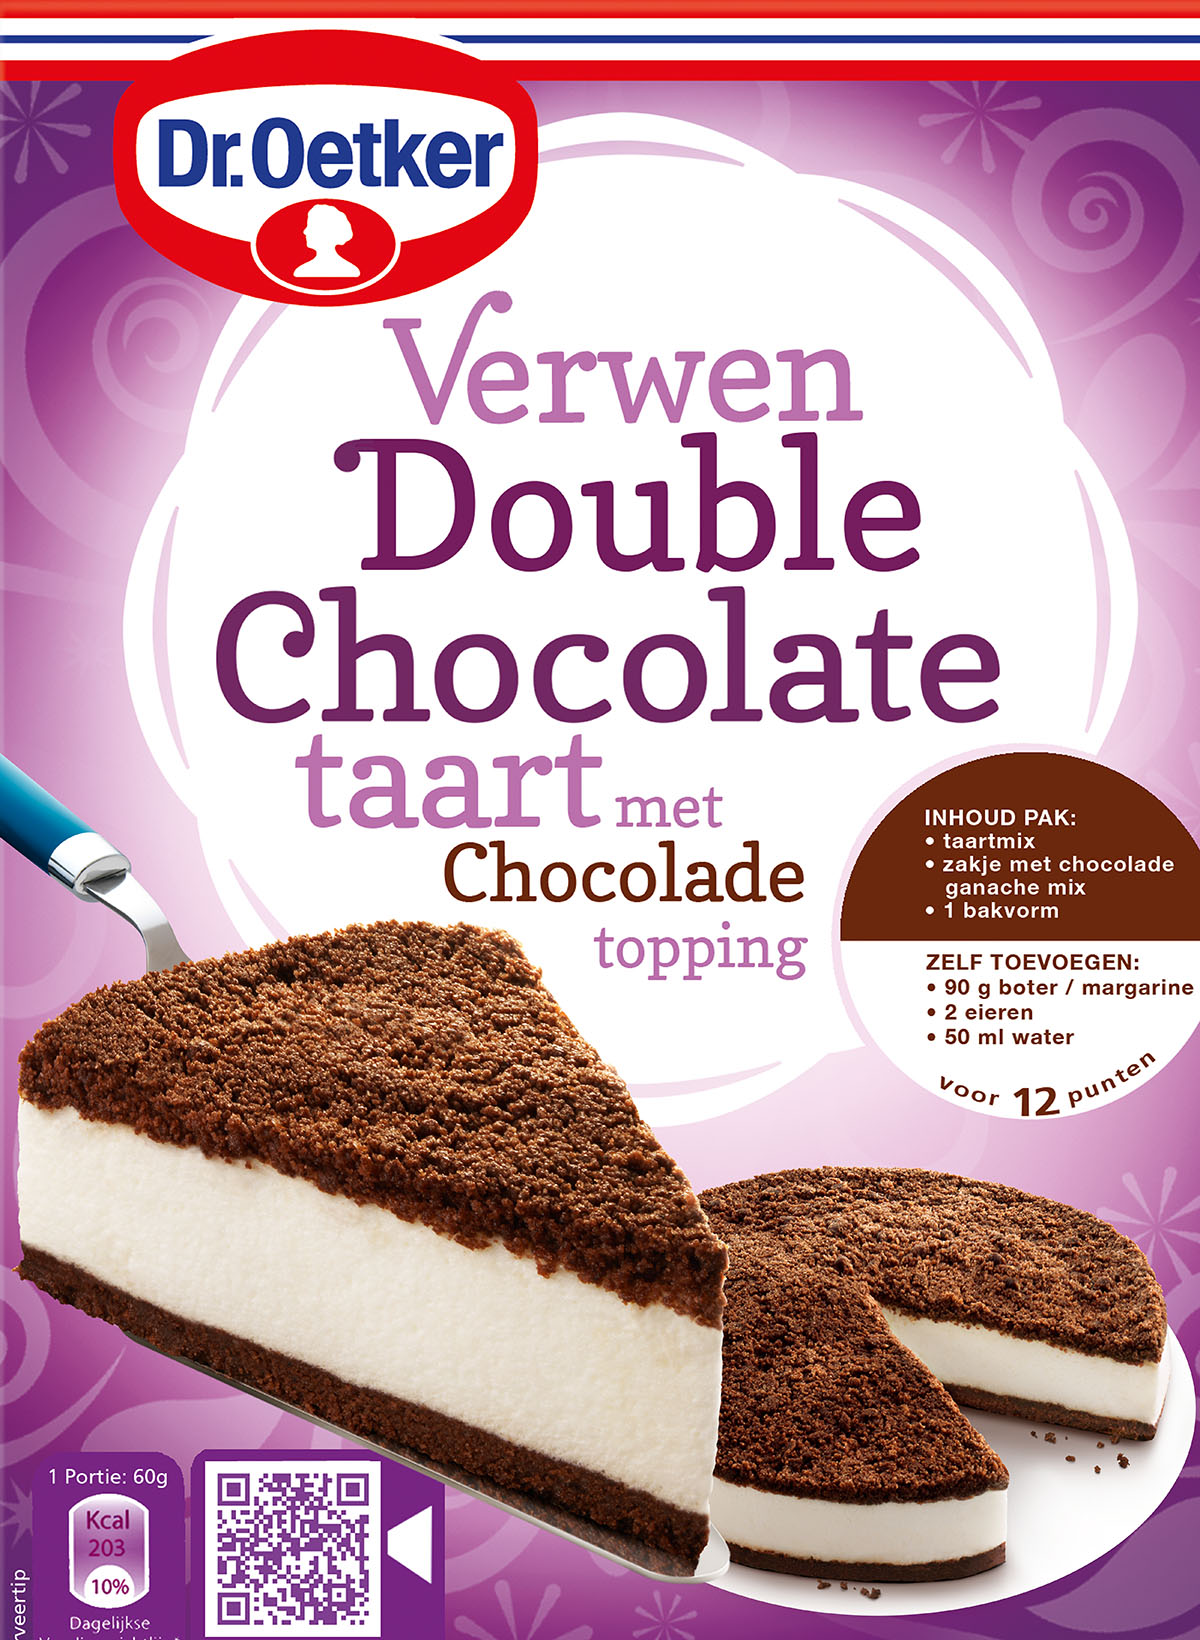 Packaging photography of Dr.Oetker's Double Choclate cake made by Studio_m Photography Amsterdam